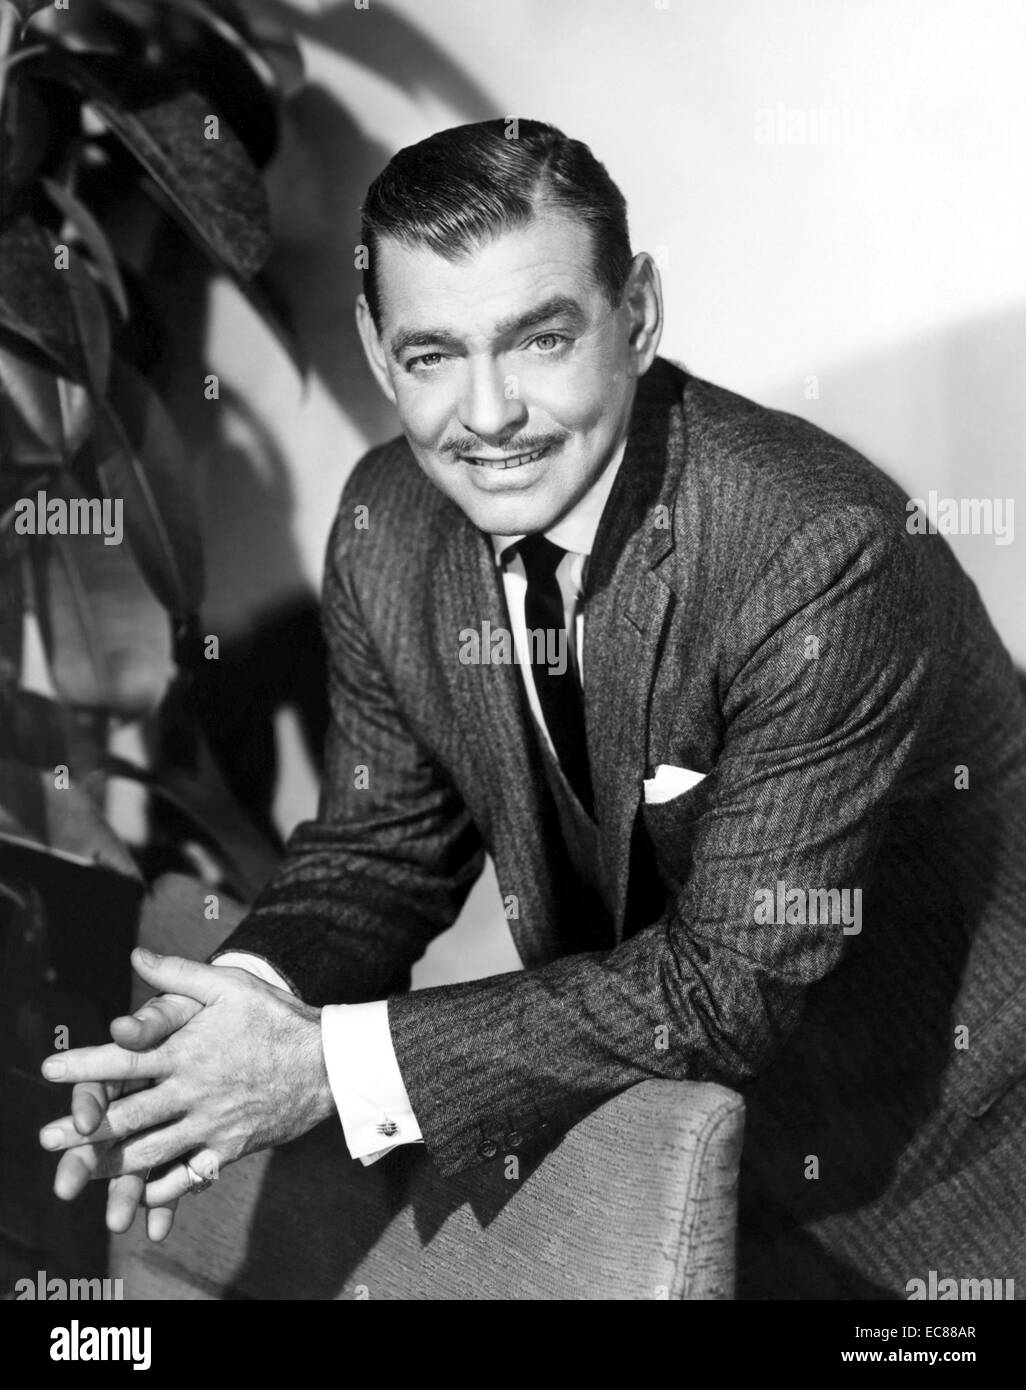 Photograph of Clark Gable (1901-1960) American film actor. Dated 1950 - Stock Image